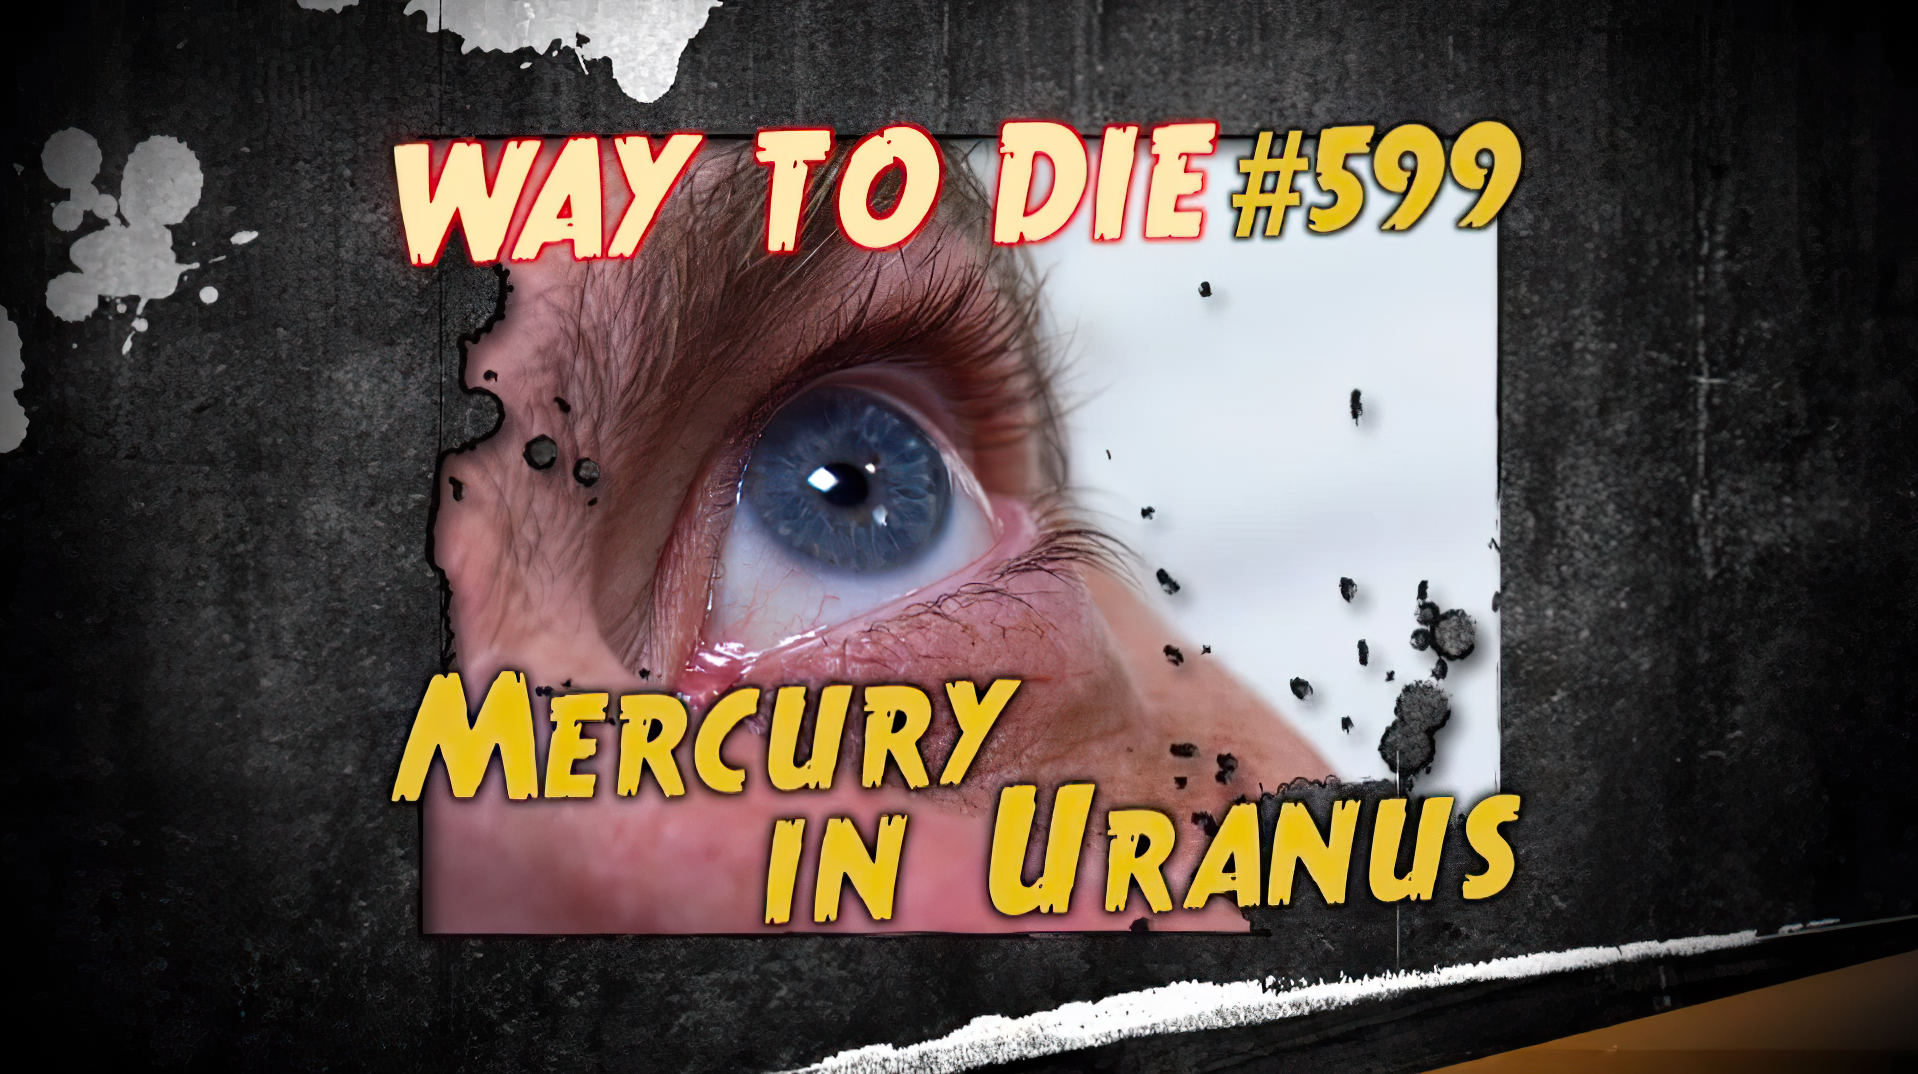 Mercury in Uranus